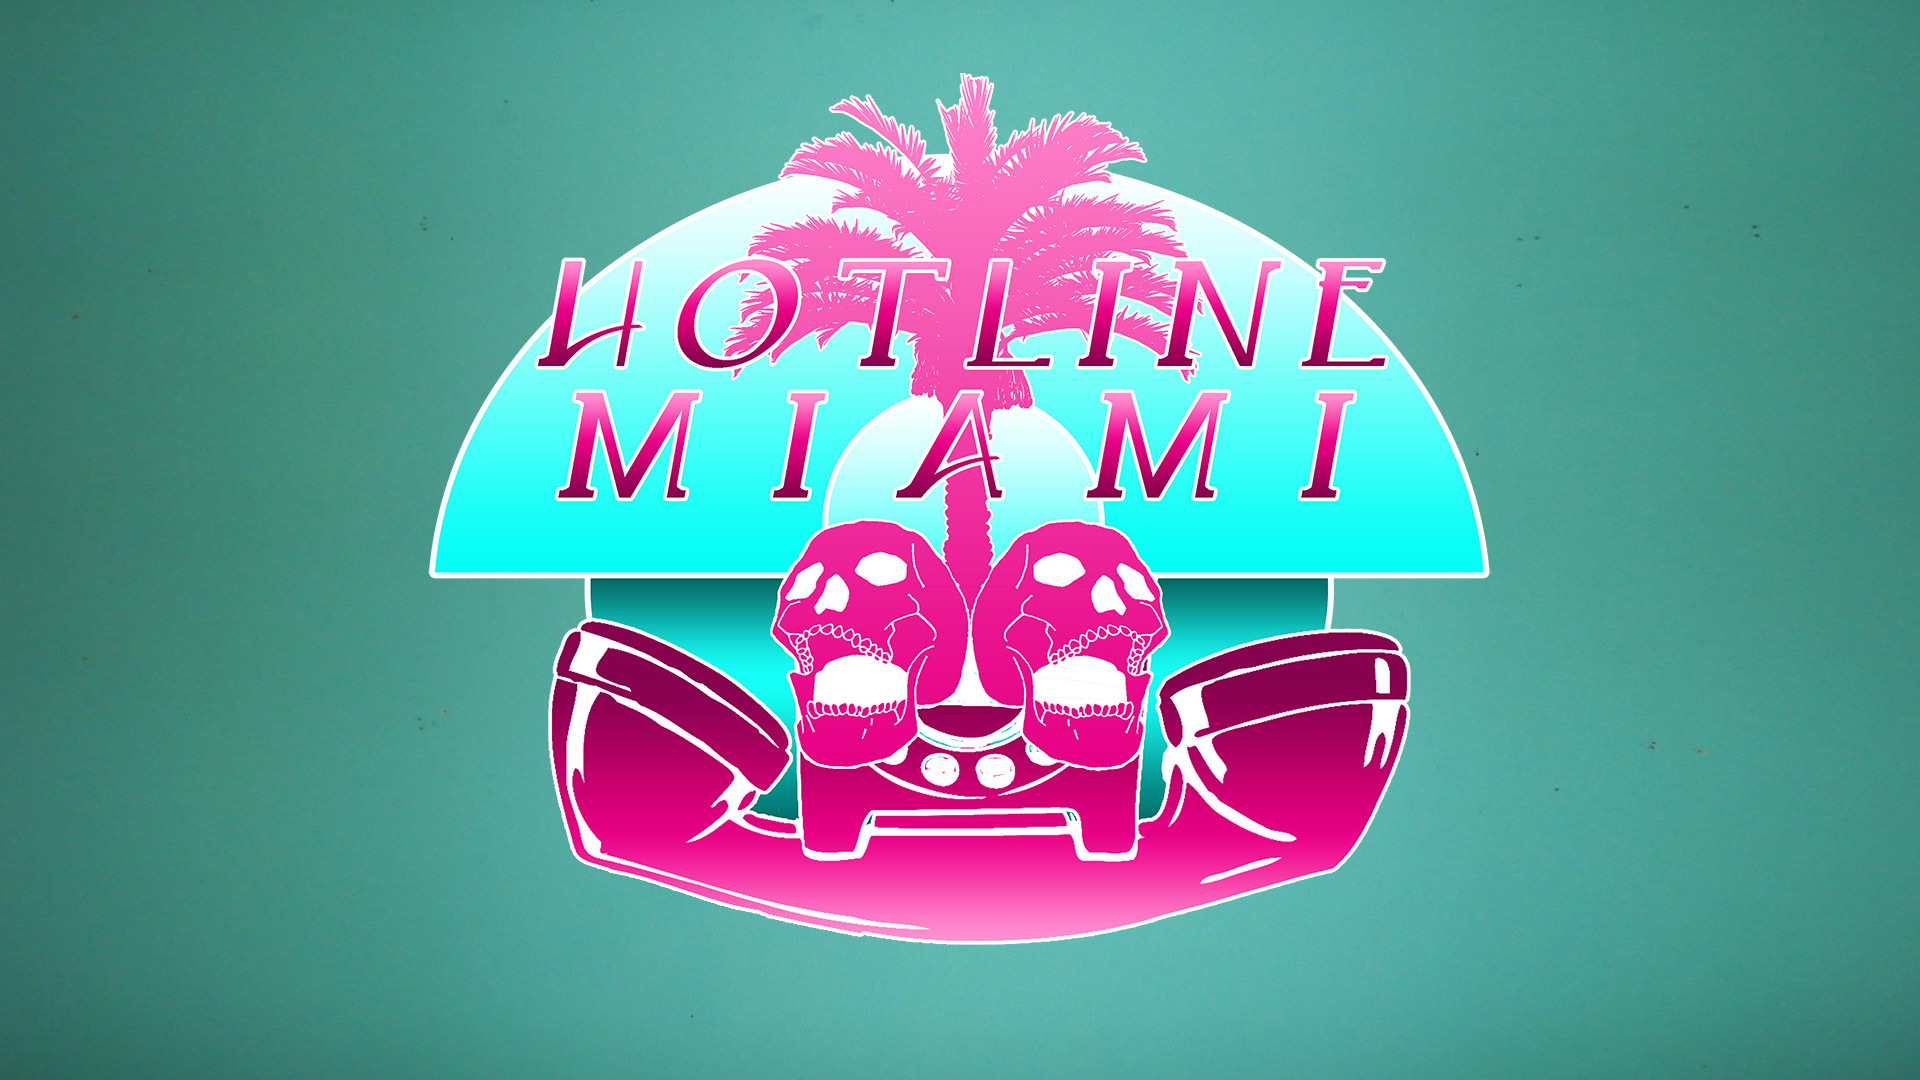 Free Hotline Miami Wallpaper in 1920x1080